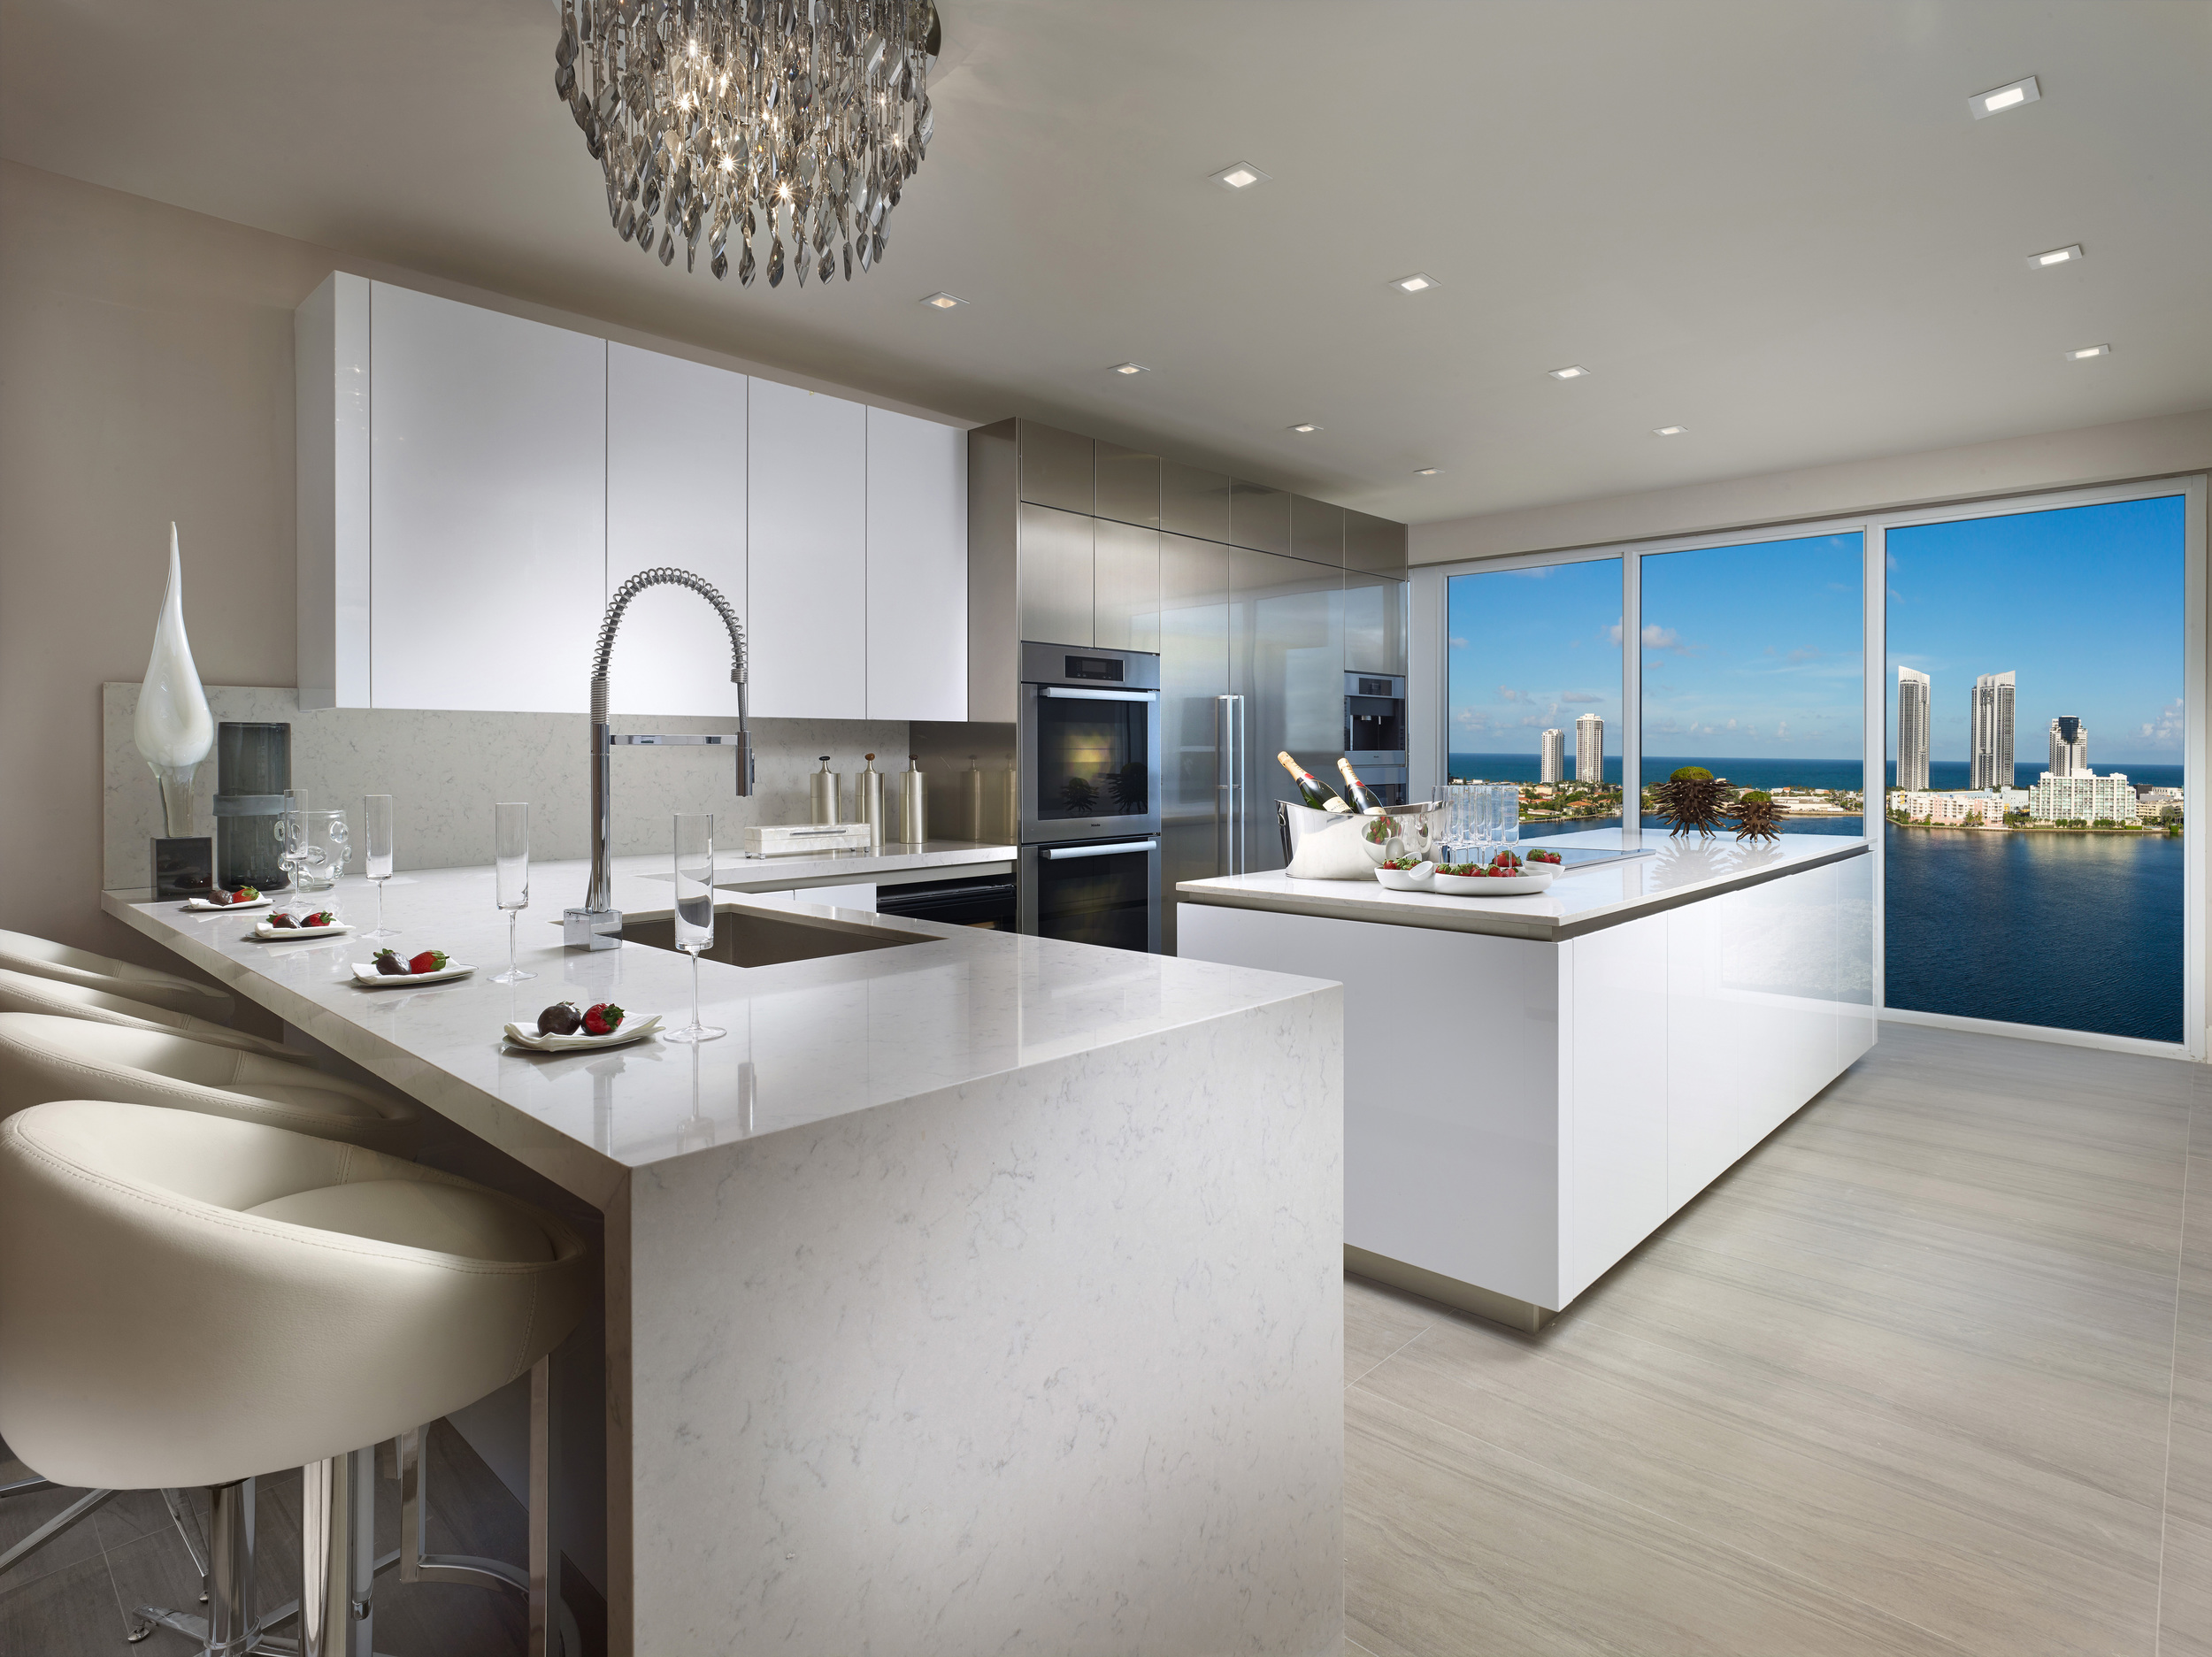 4-RESIDENCES-PRIVE_KITCHEN_D.jpg